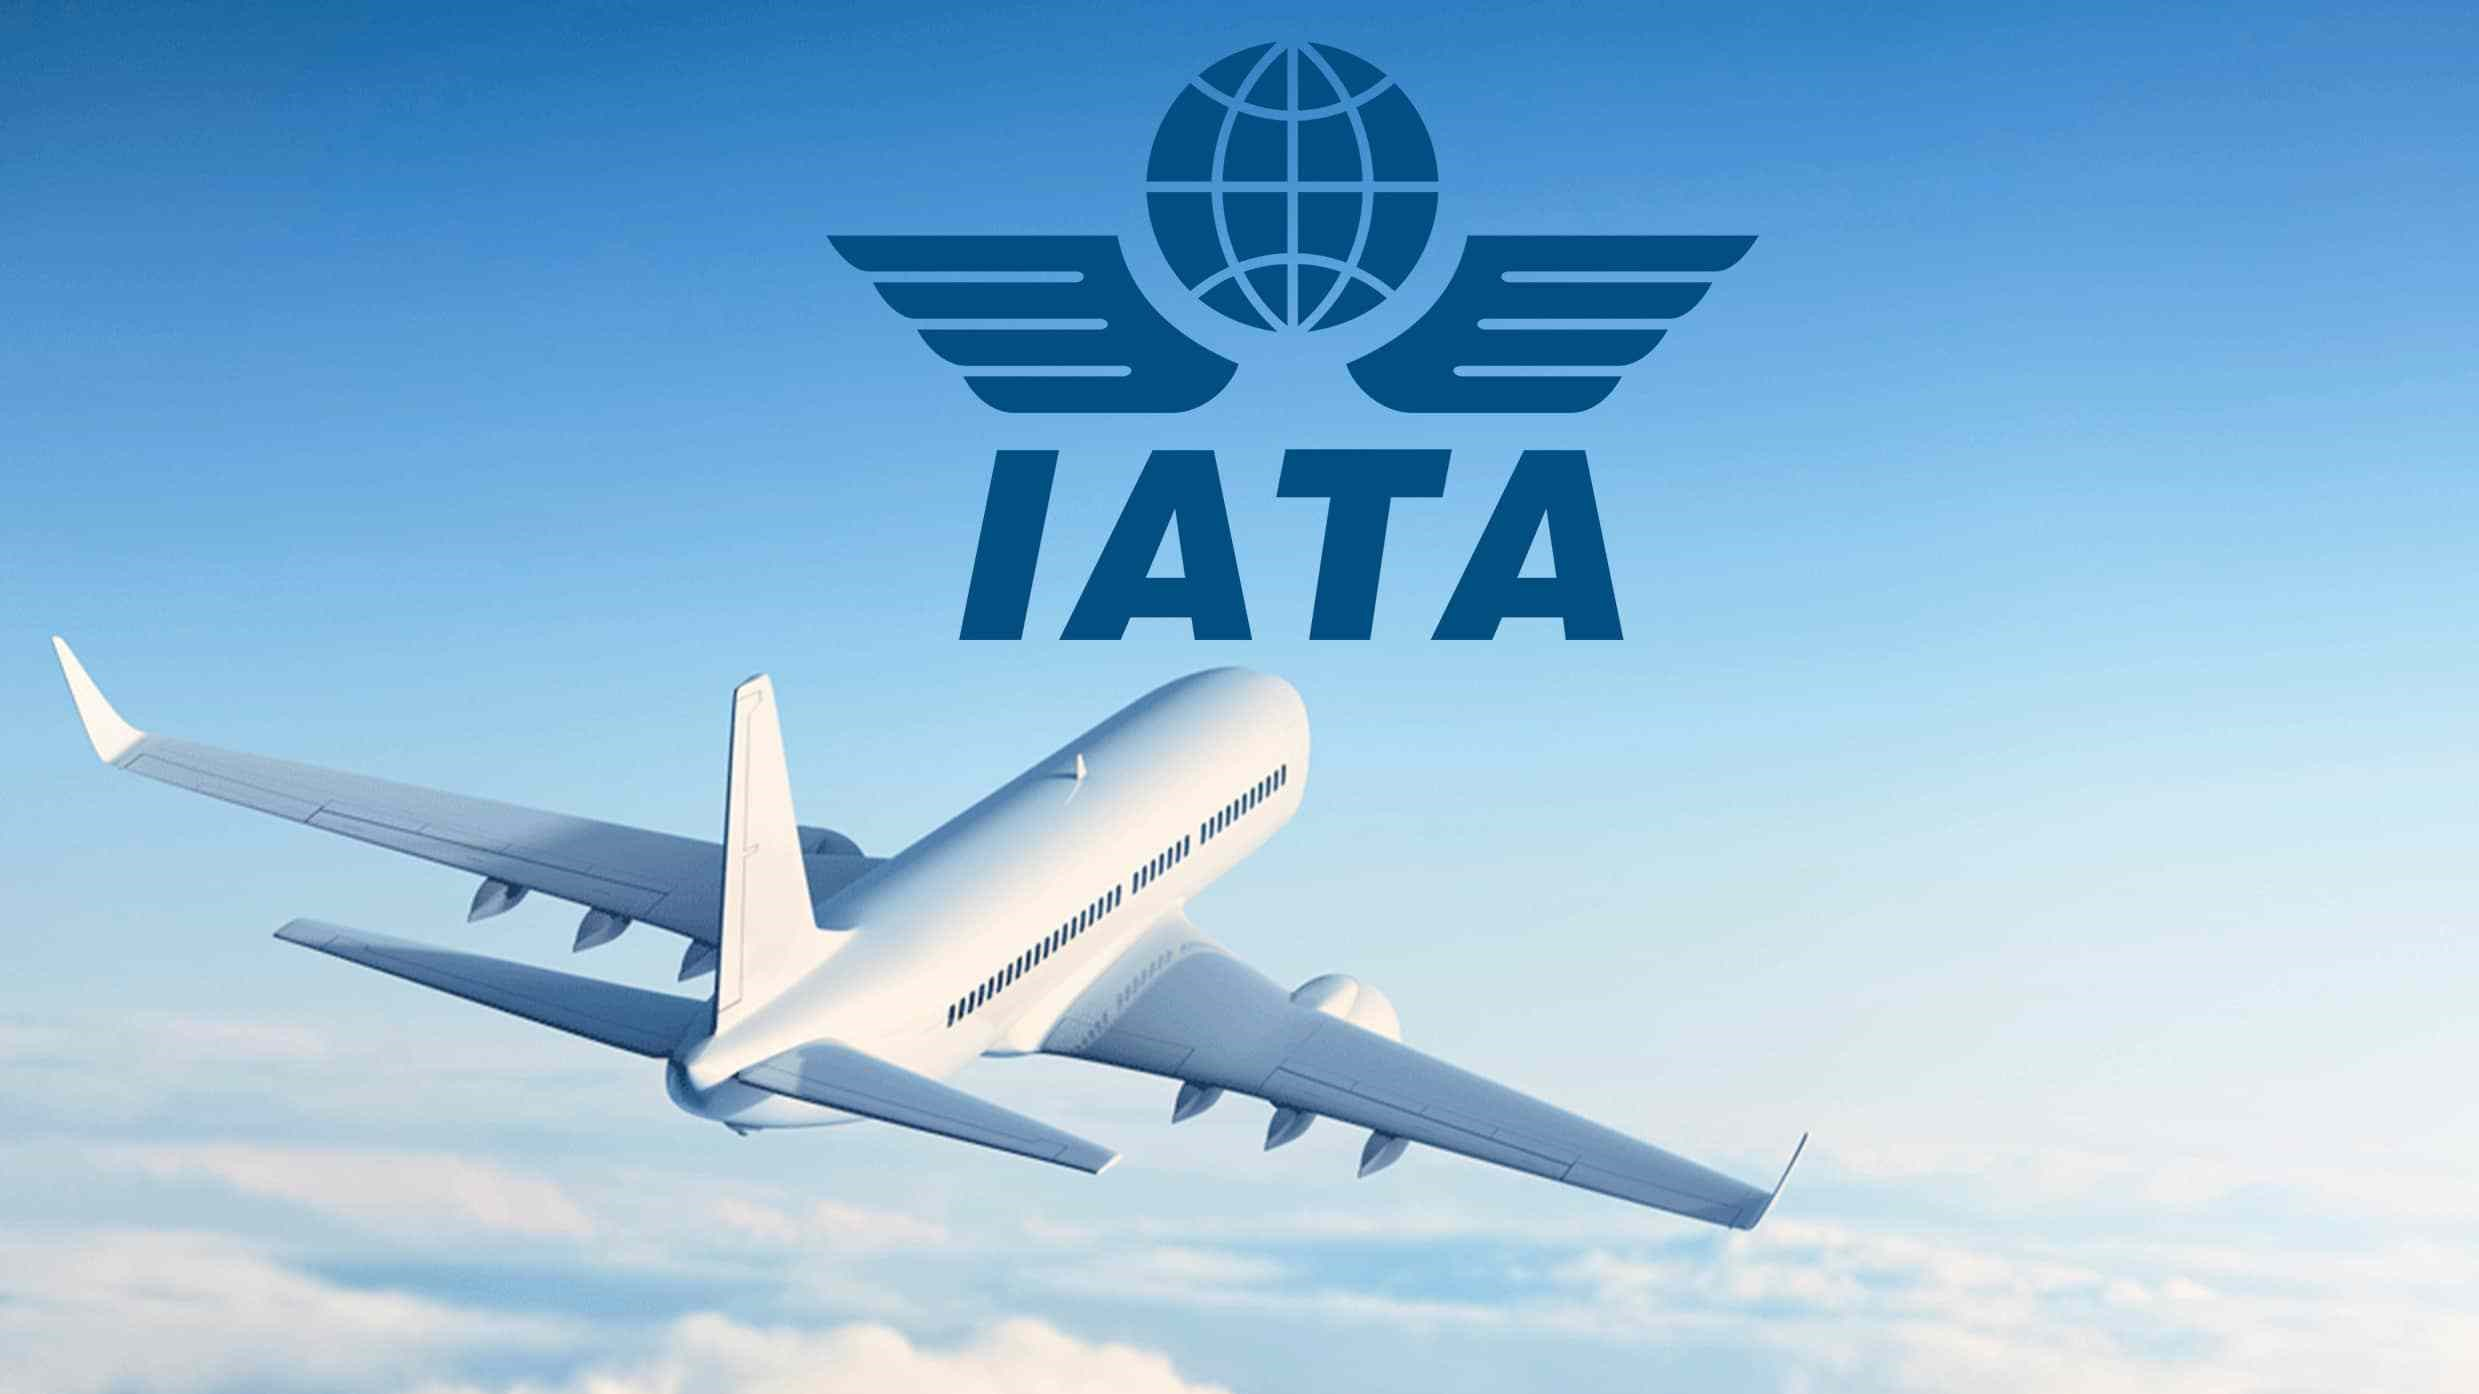 IATA develops 'Contactless Travel' app for post-COVID international travel